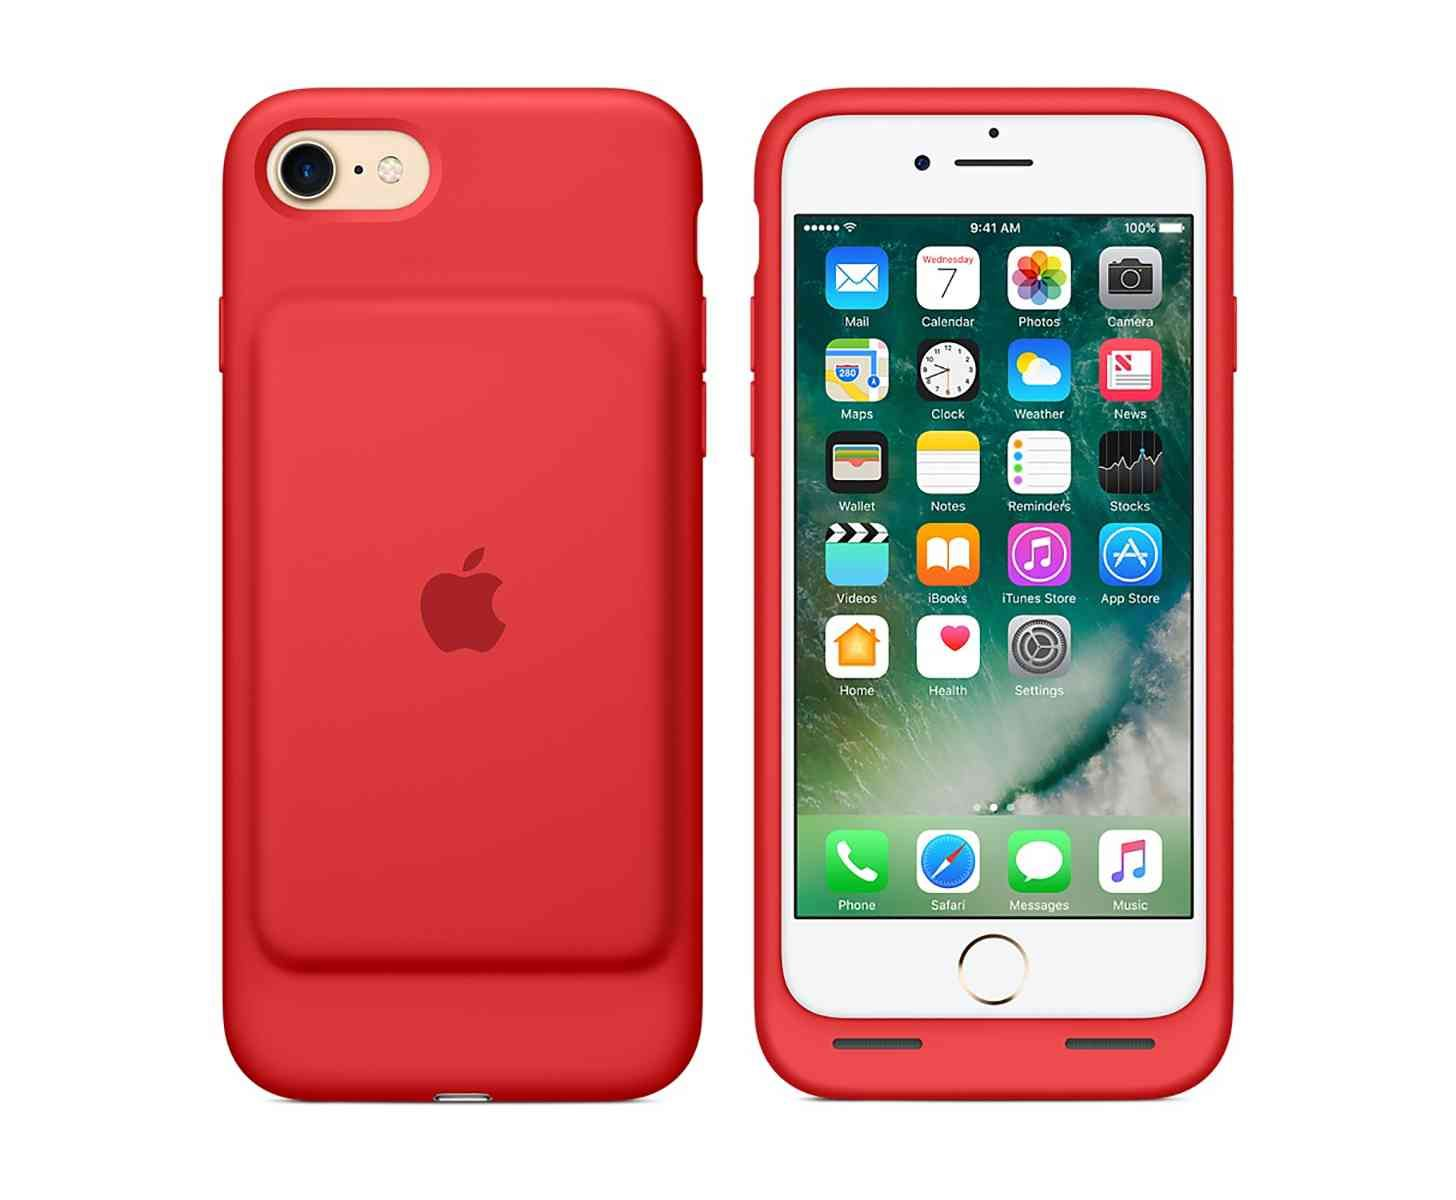 Apple Selling Red Iphone 7 Smart Battery Case Other Accessories For Product Red Iphone Apple Iphone Case Apple Iphone